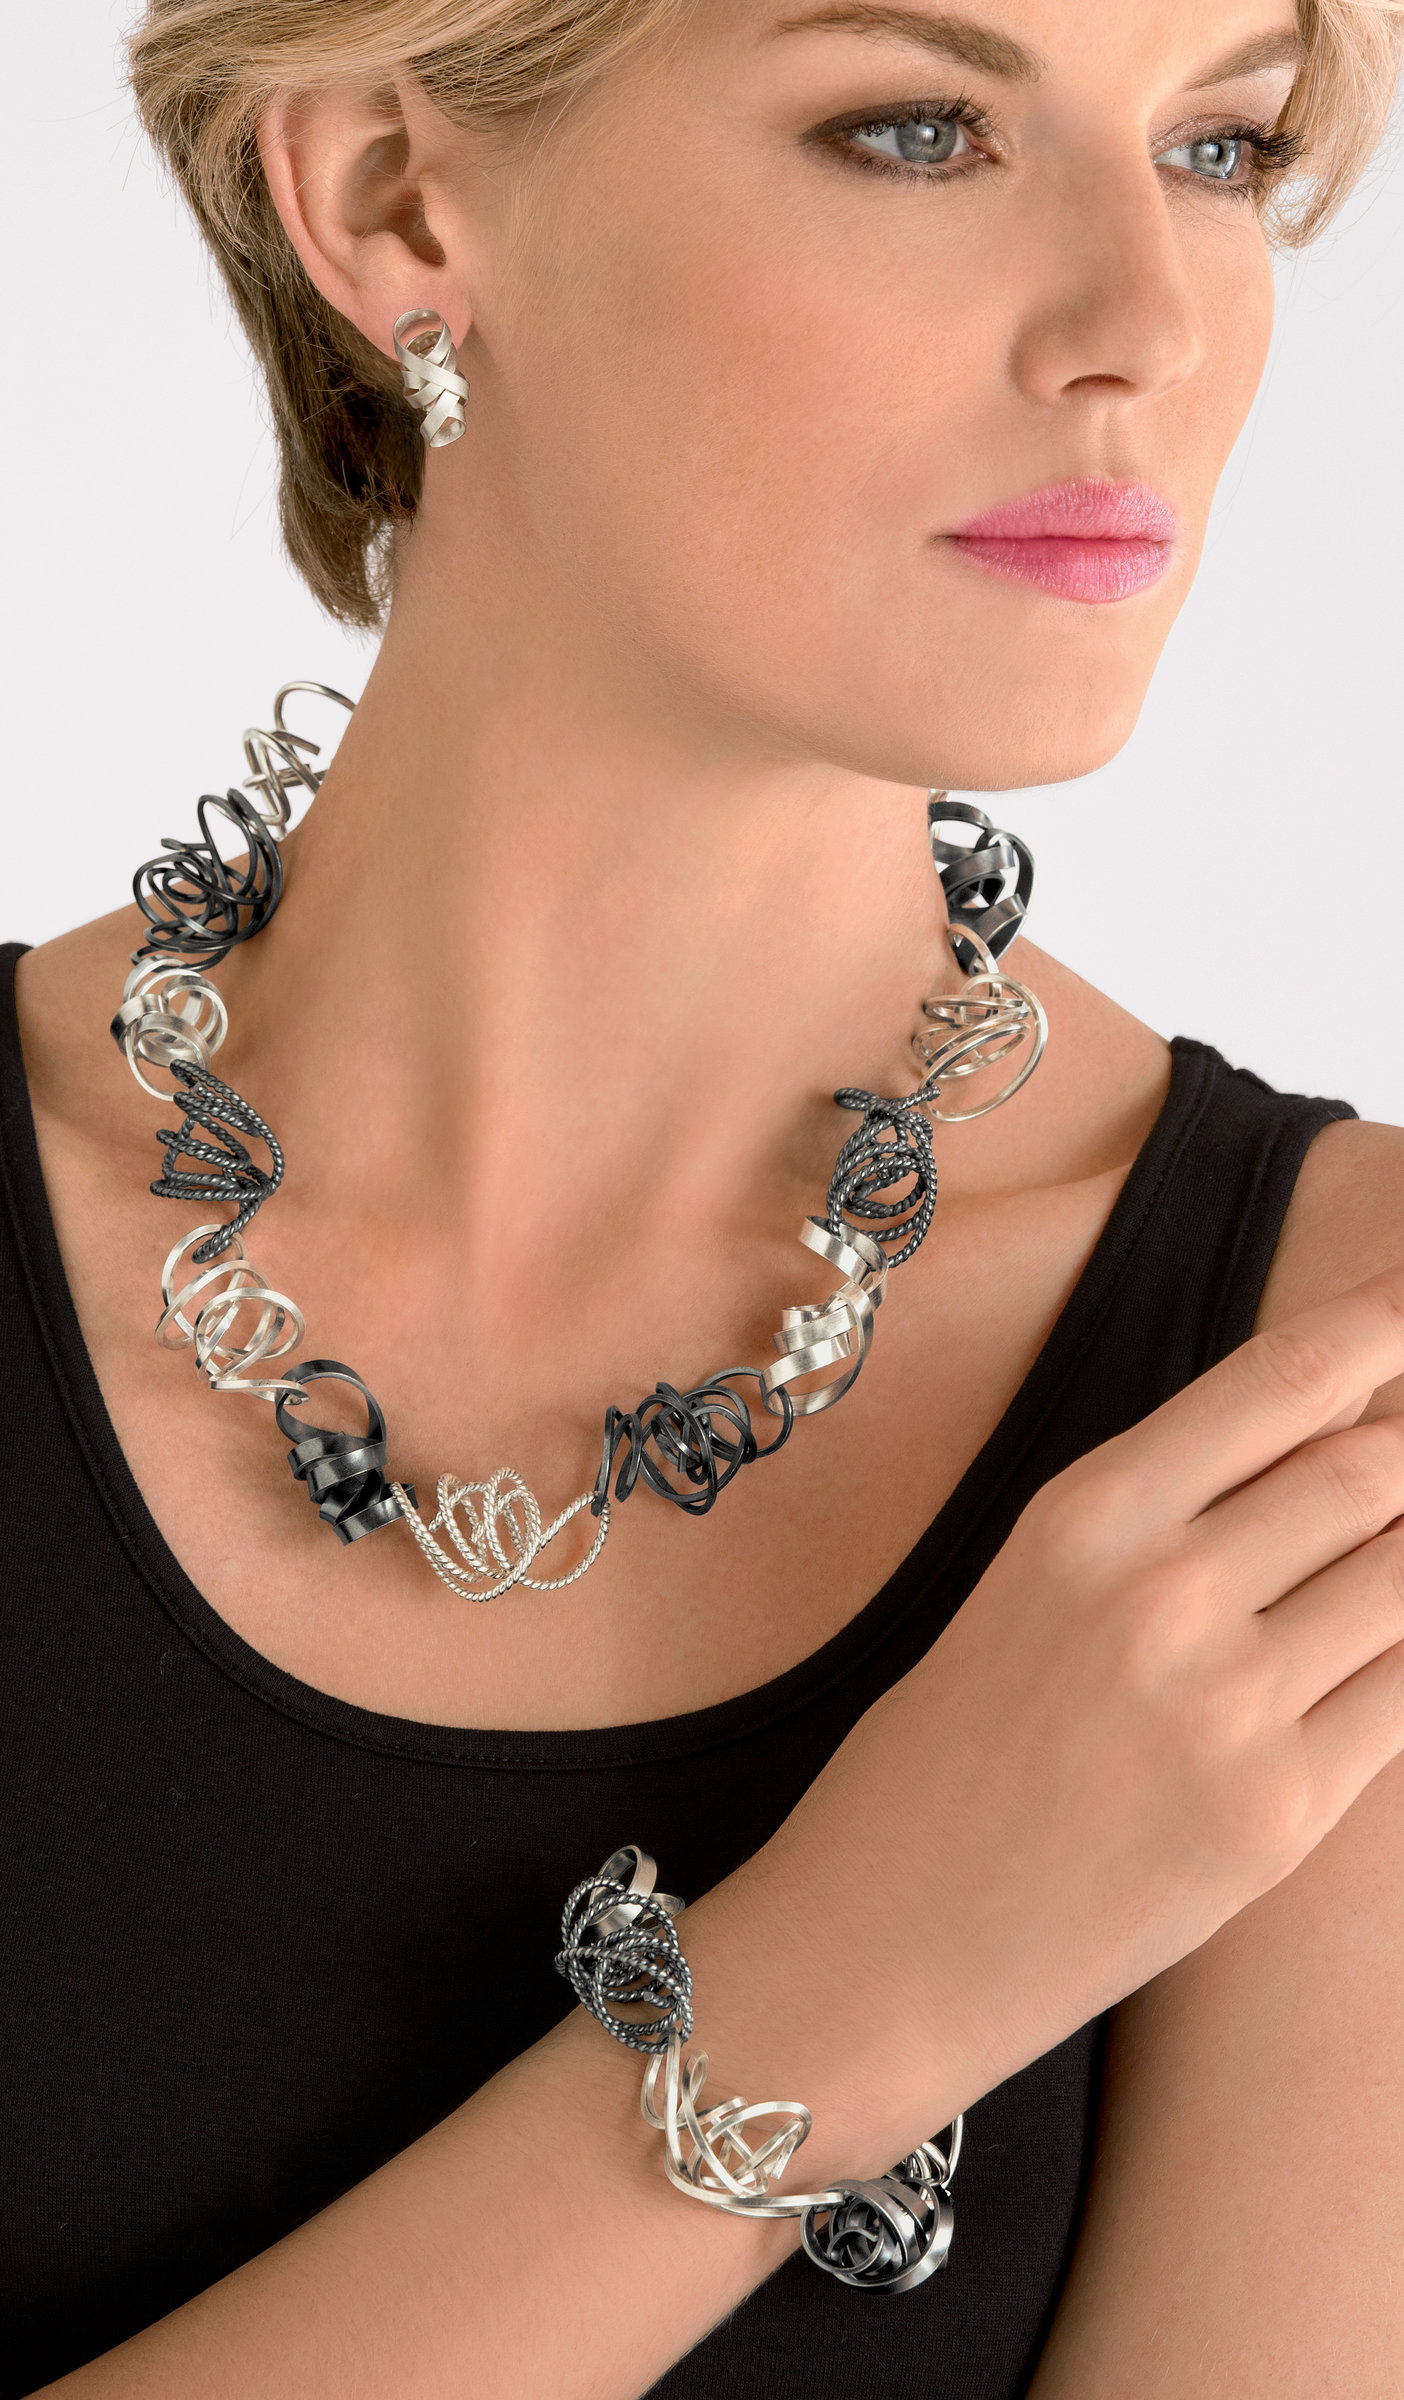 Rina S Young Jewelry Trapeze Asymmetrical Jewelry By Rina